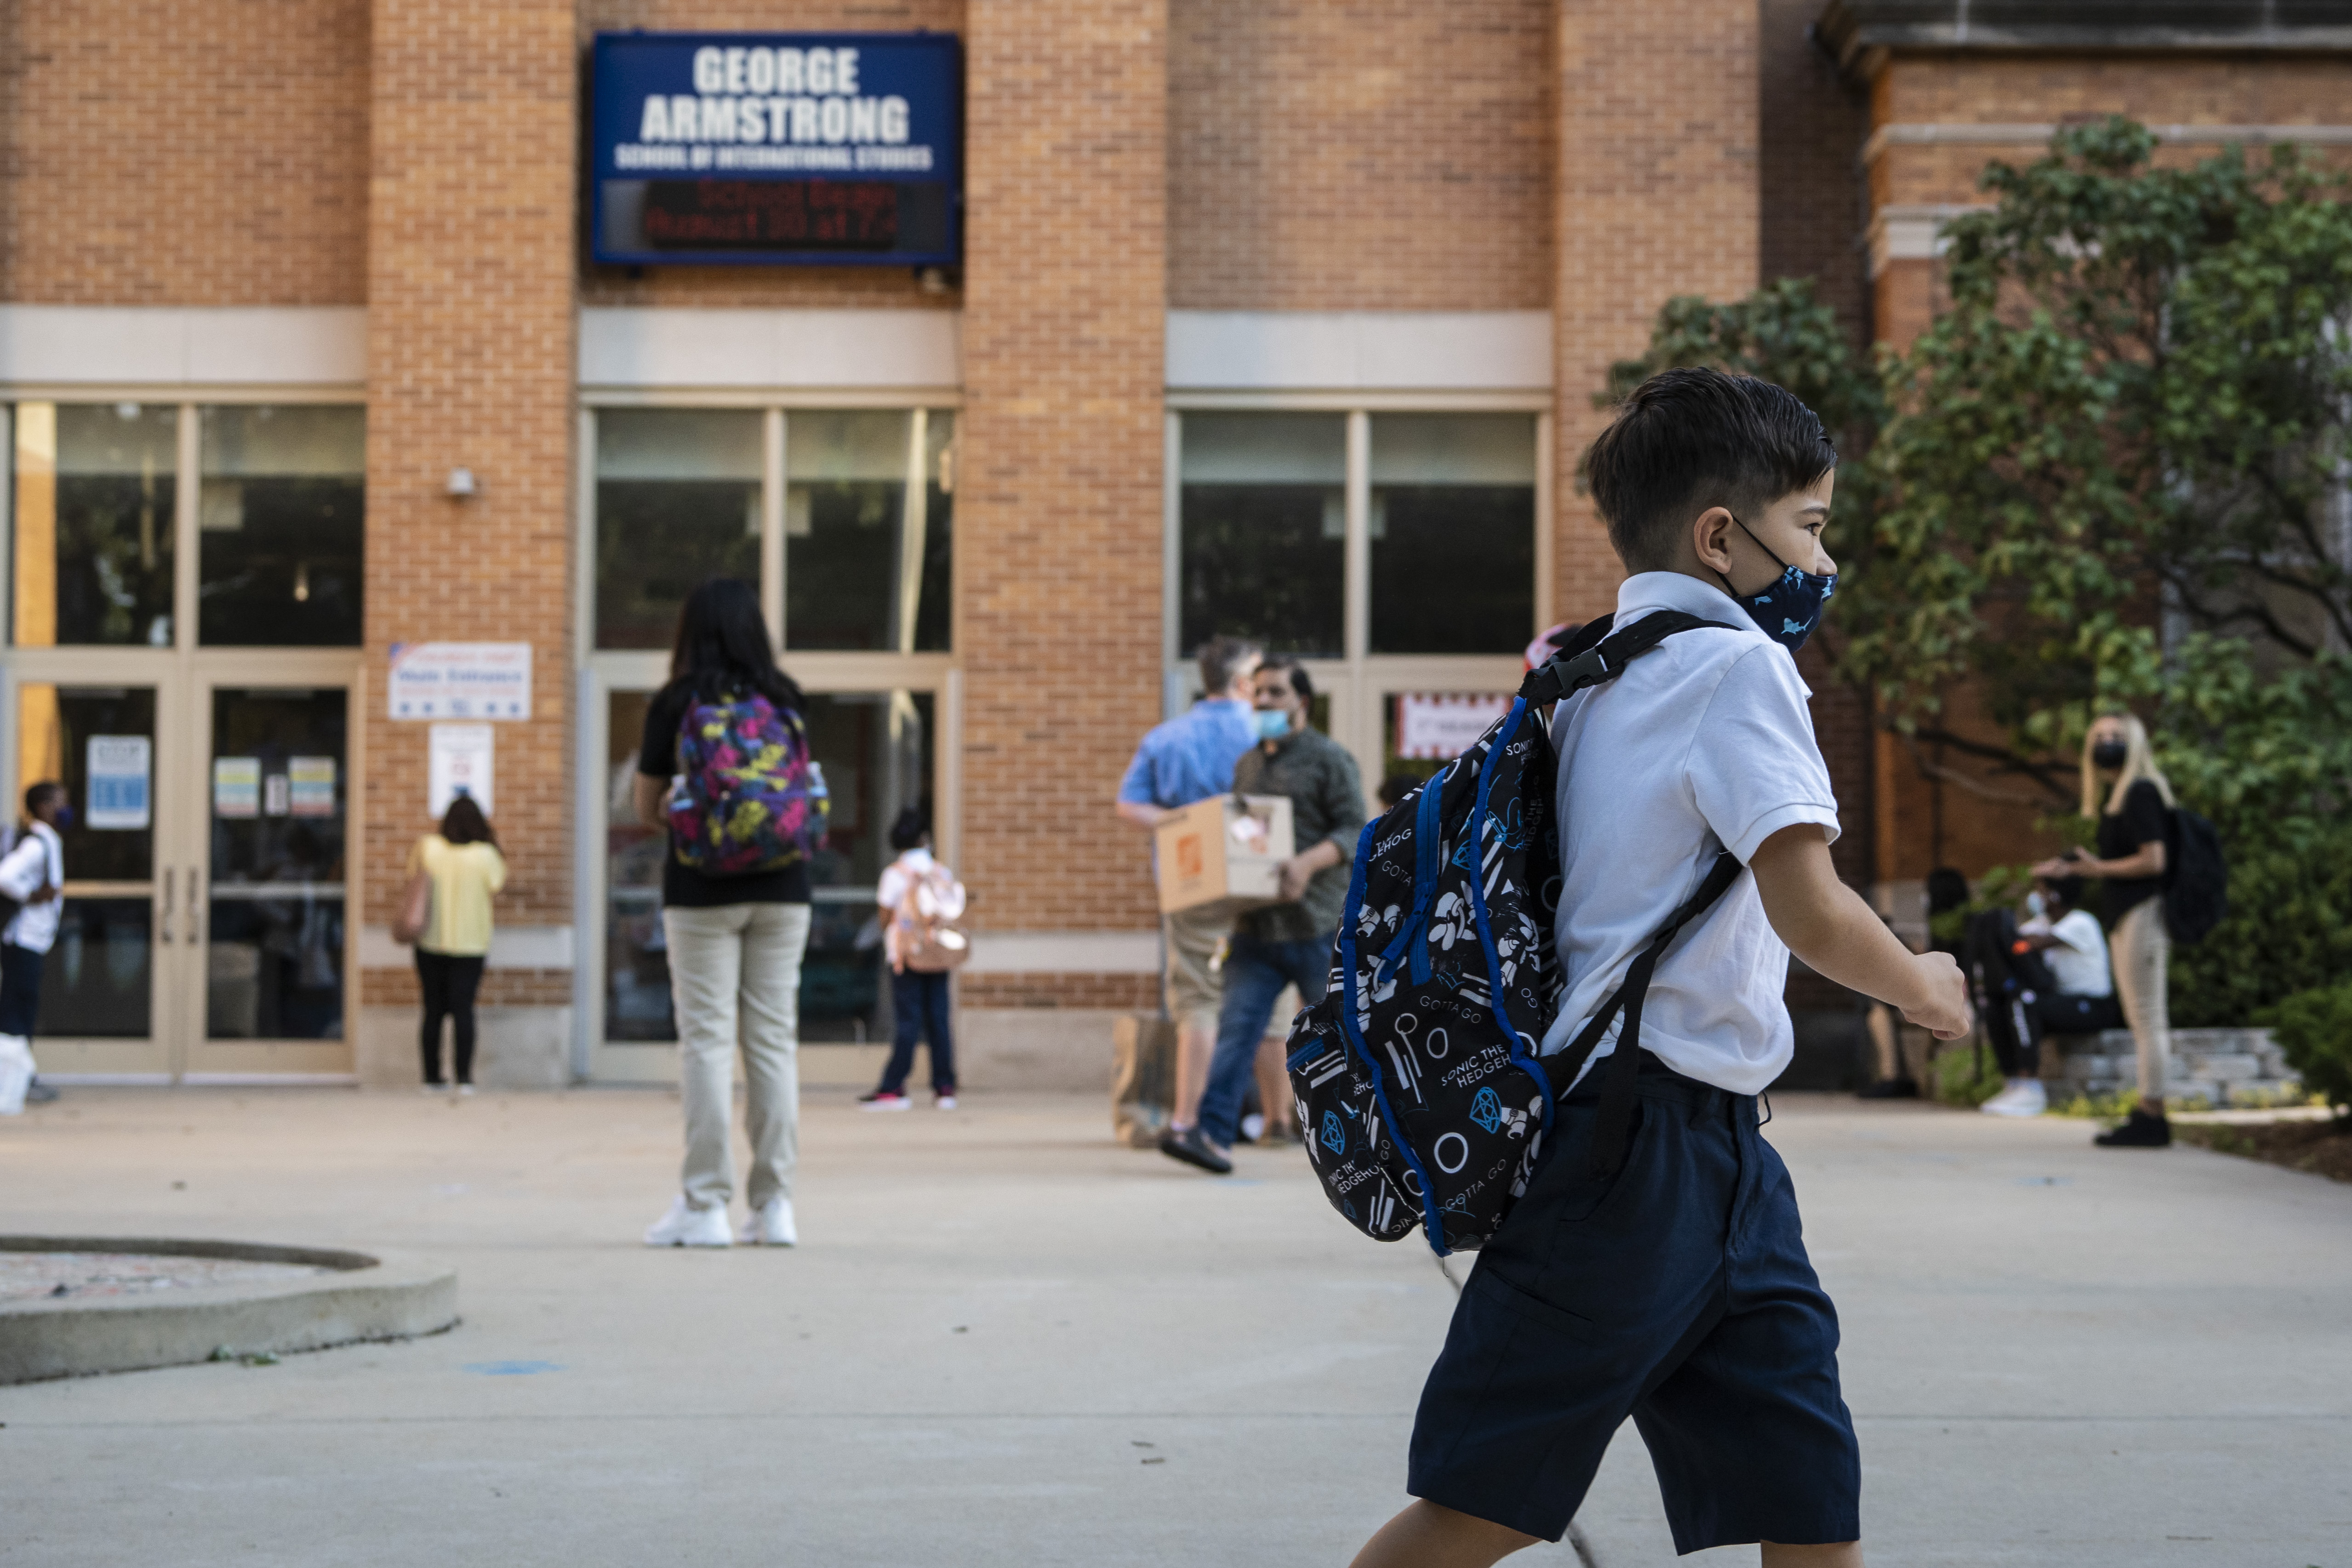 Parents and students arrive at George Armstrong Elementary School, 2110 W. Greenleaf Ave. in Rogers Park, for the first day of school for Chicago Public Schools, Monday morning, Aug. 30, 2021.